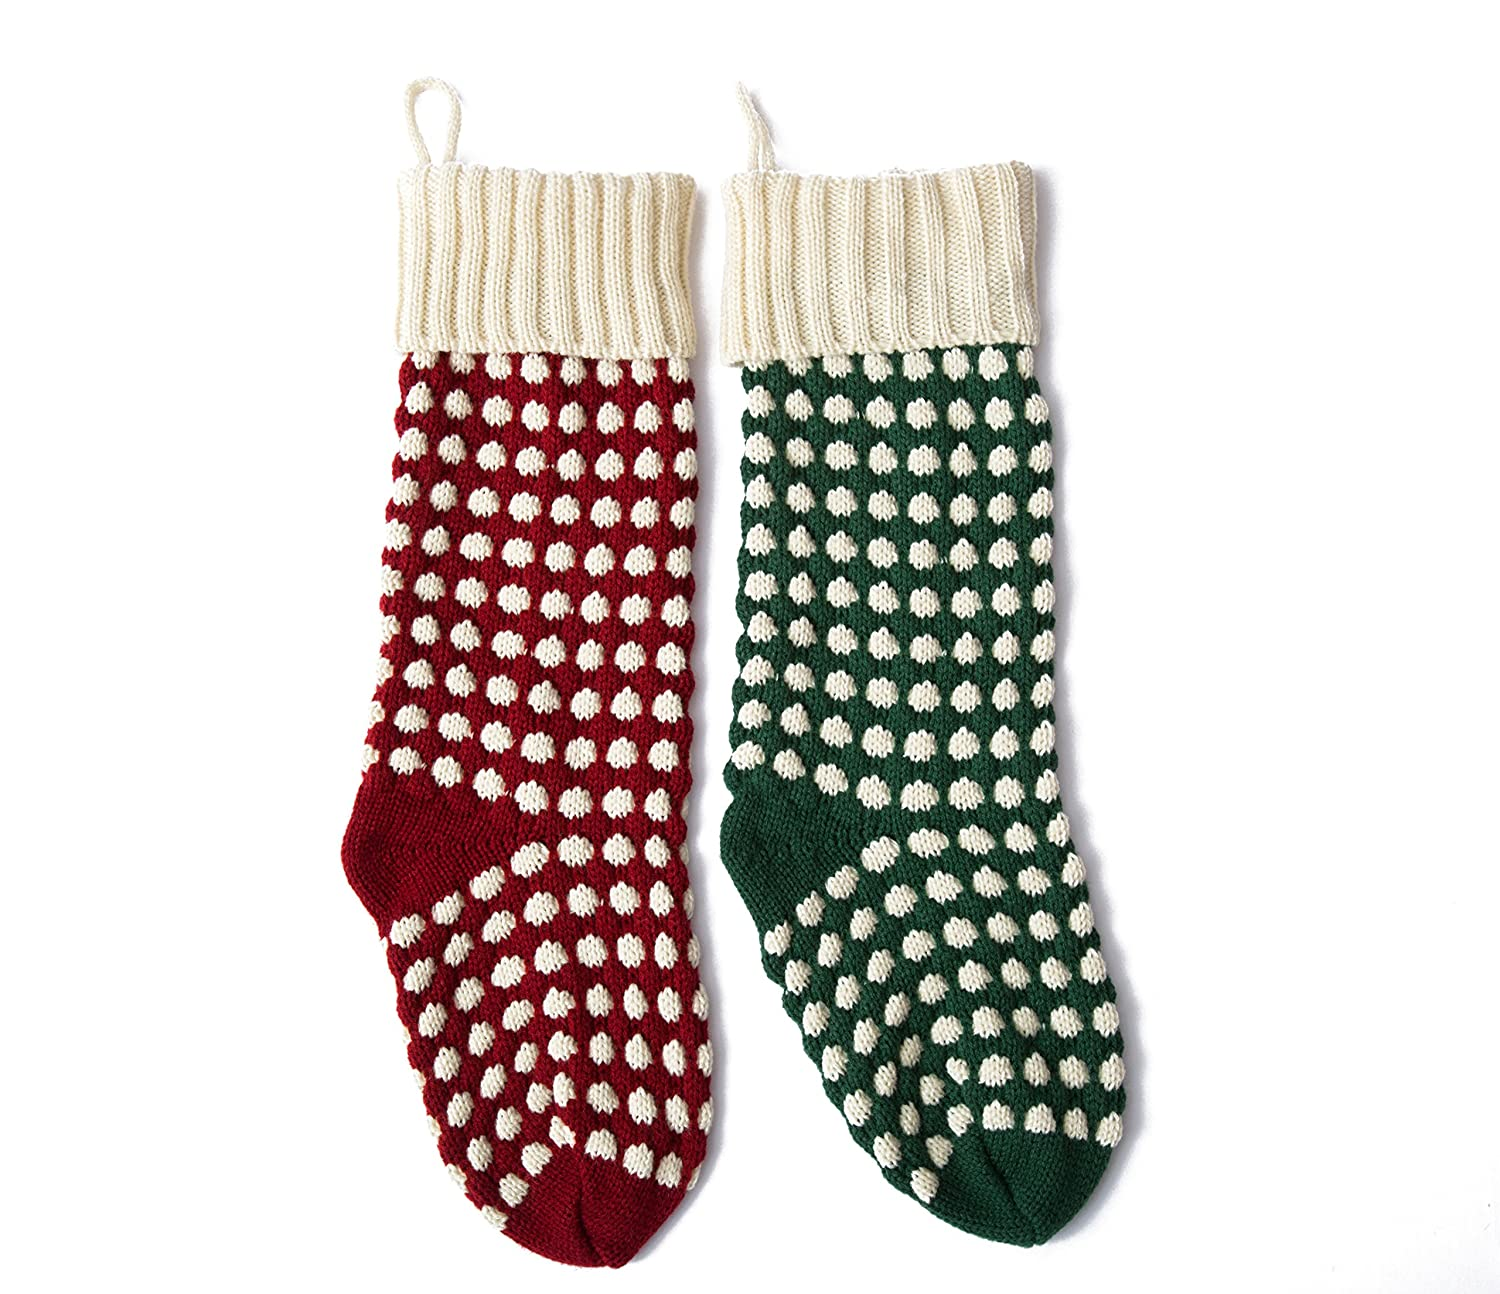 Leoparts Polka Dot Knit Christmas Stockings 2pcs Assorted